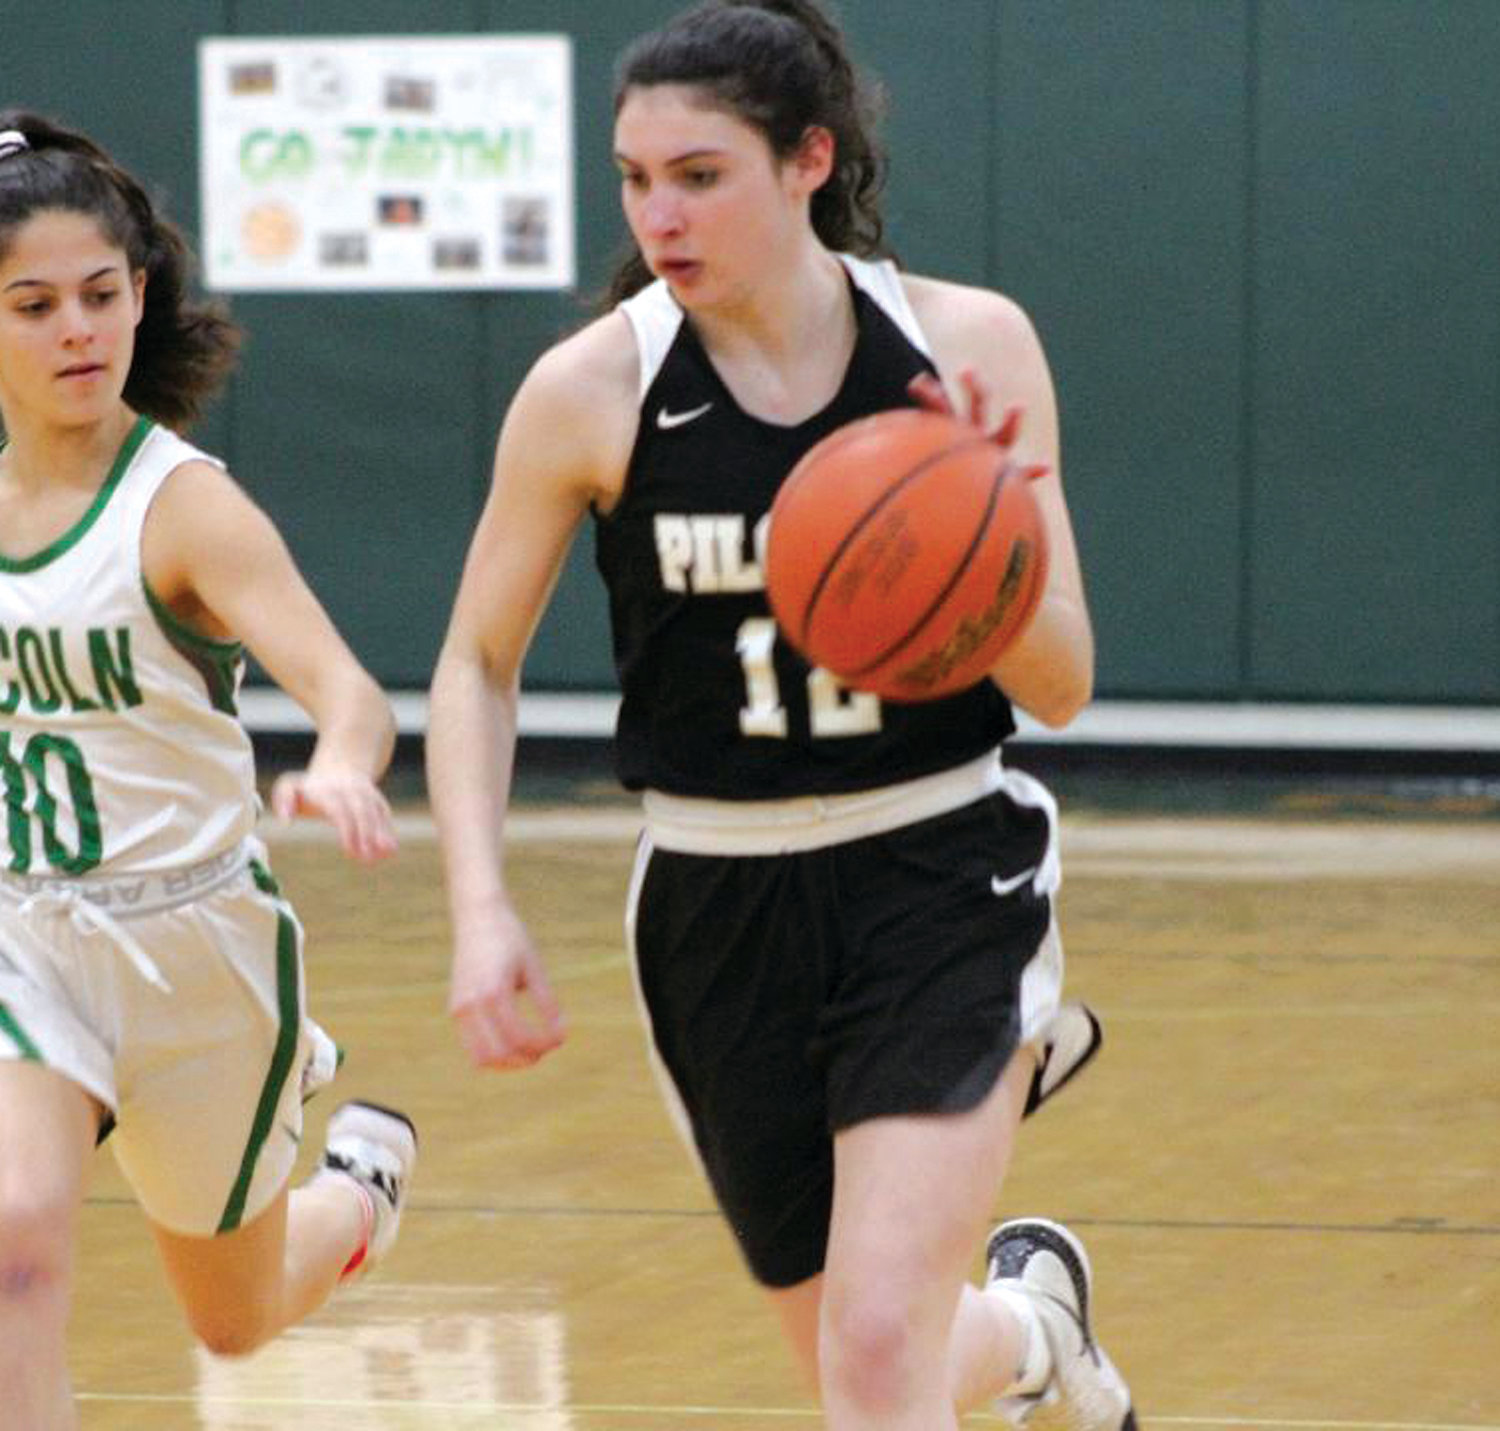 UP THE COURT: Hannah French races up the court against Lincoln School.